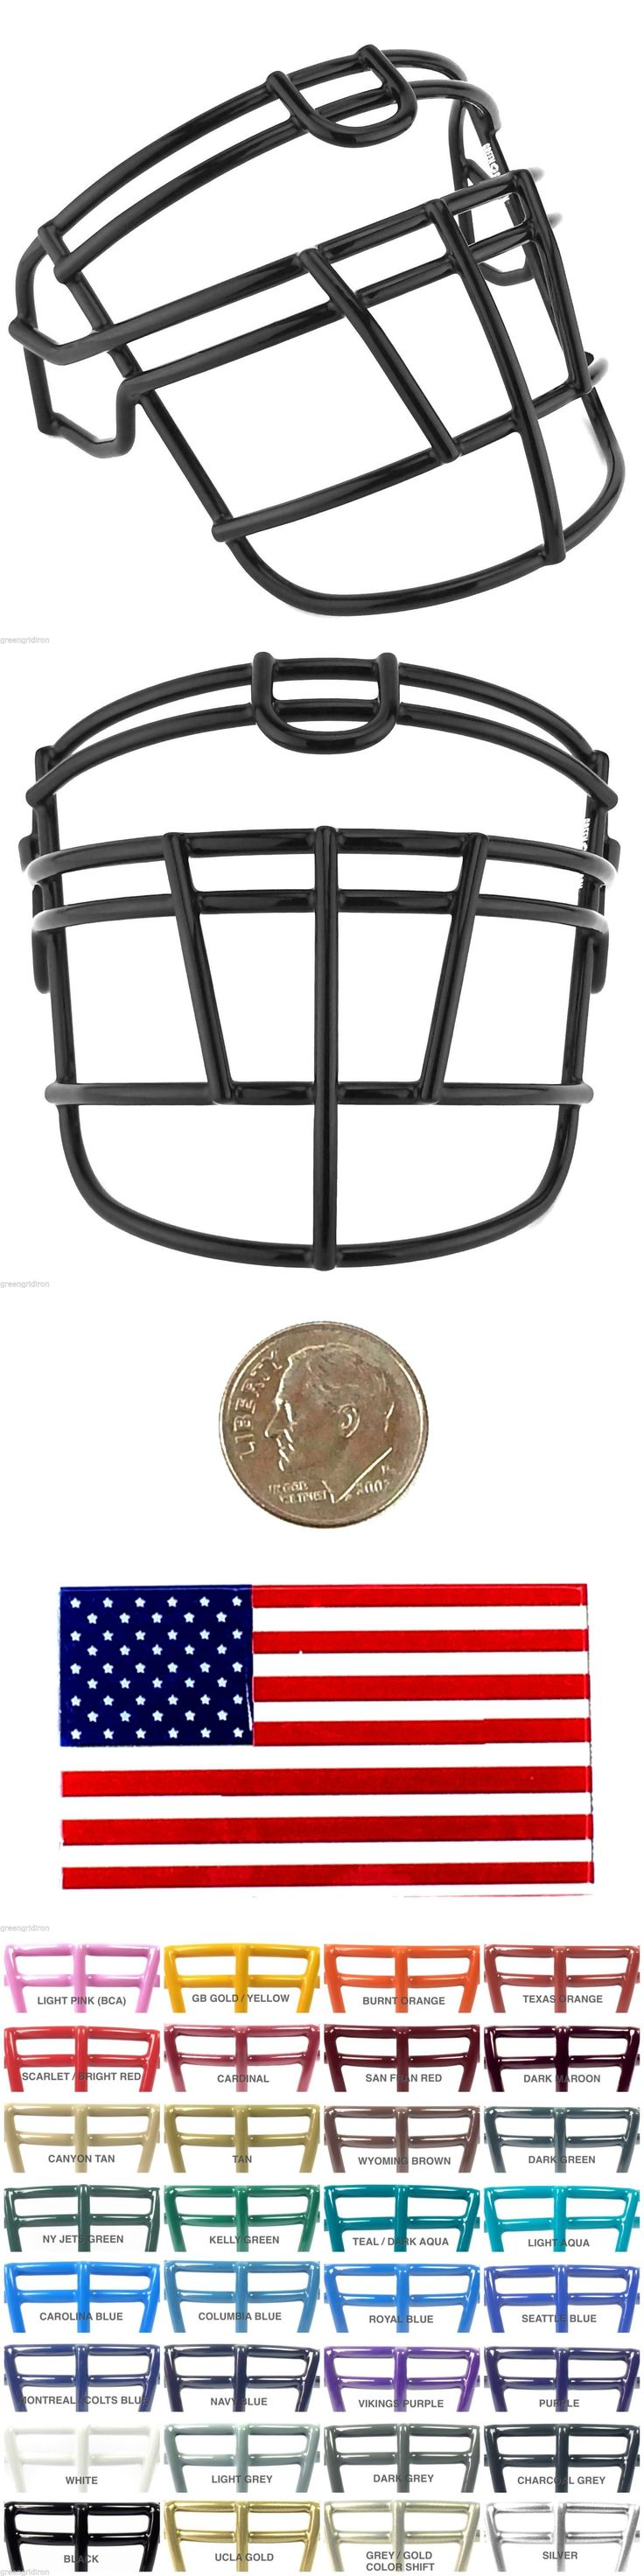 Helmets and Hats 21222: Schutt Super Pro Rjop-Ub-Dw Football Facemask - 30+ Colors Available -> BUY IT NOW ONLY: $30 on eBay!